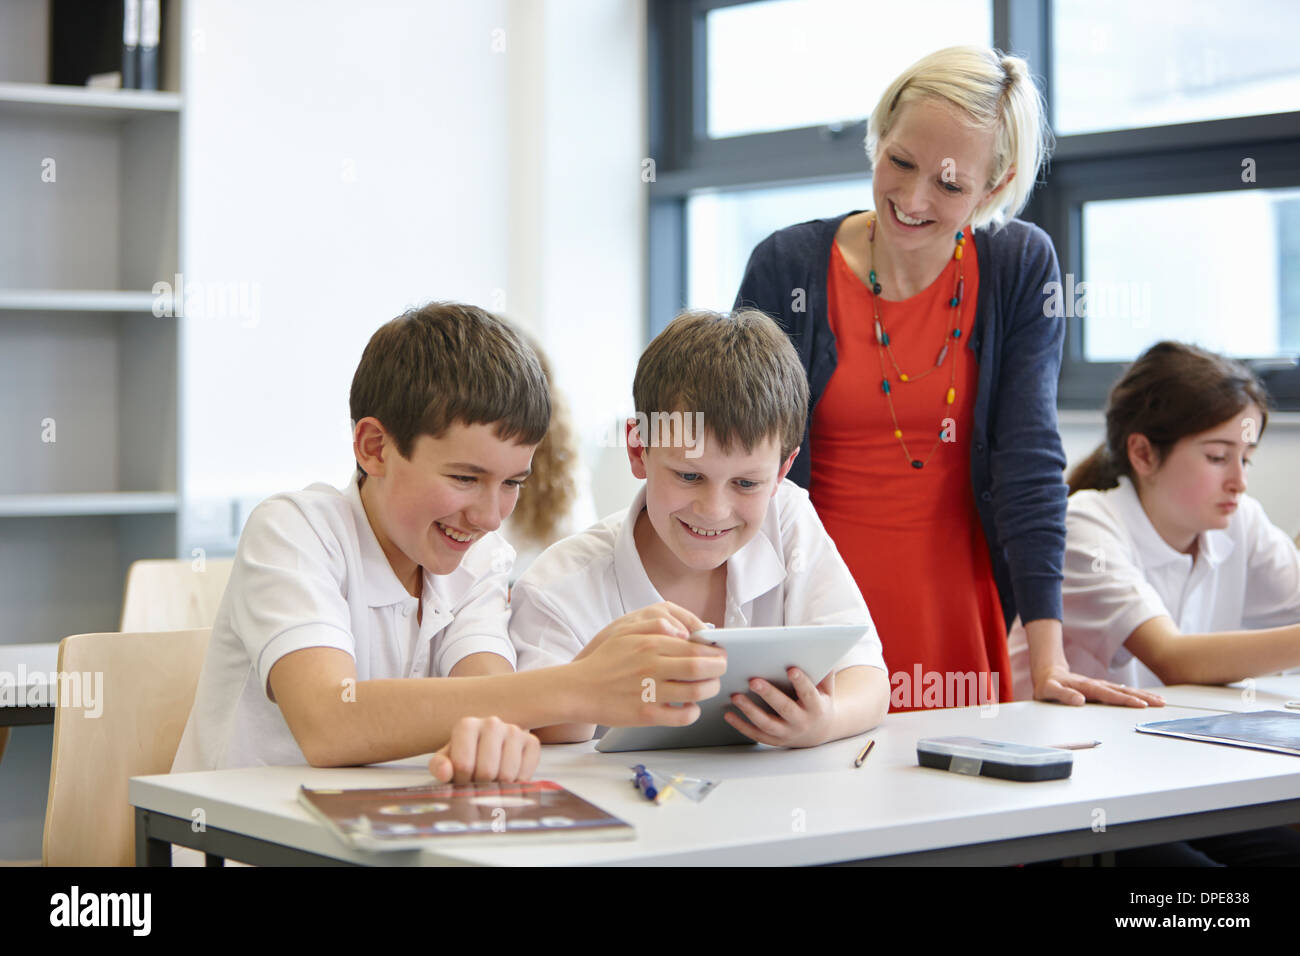 Schoolchildren working in class with teacher - Stock Image